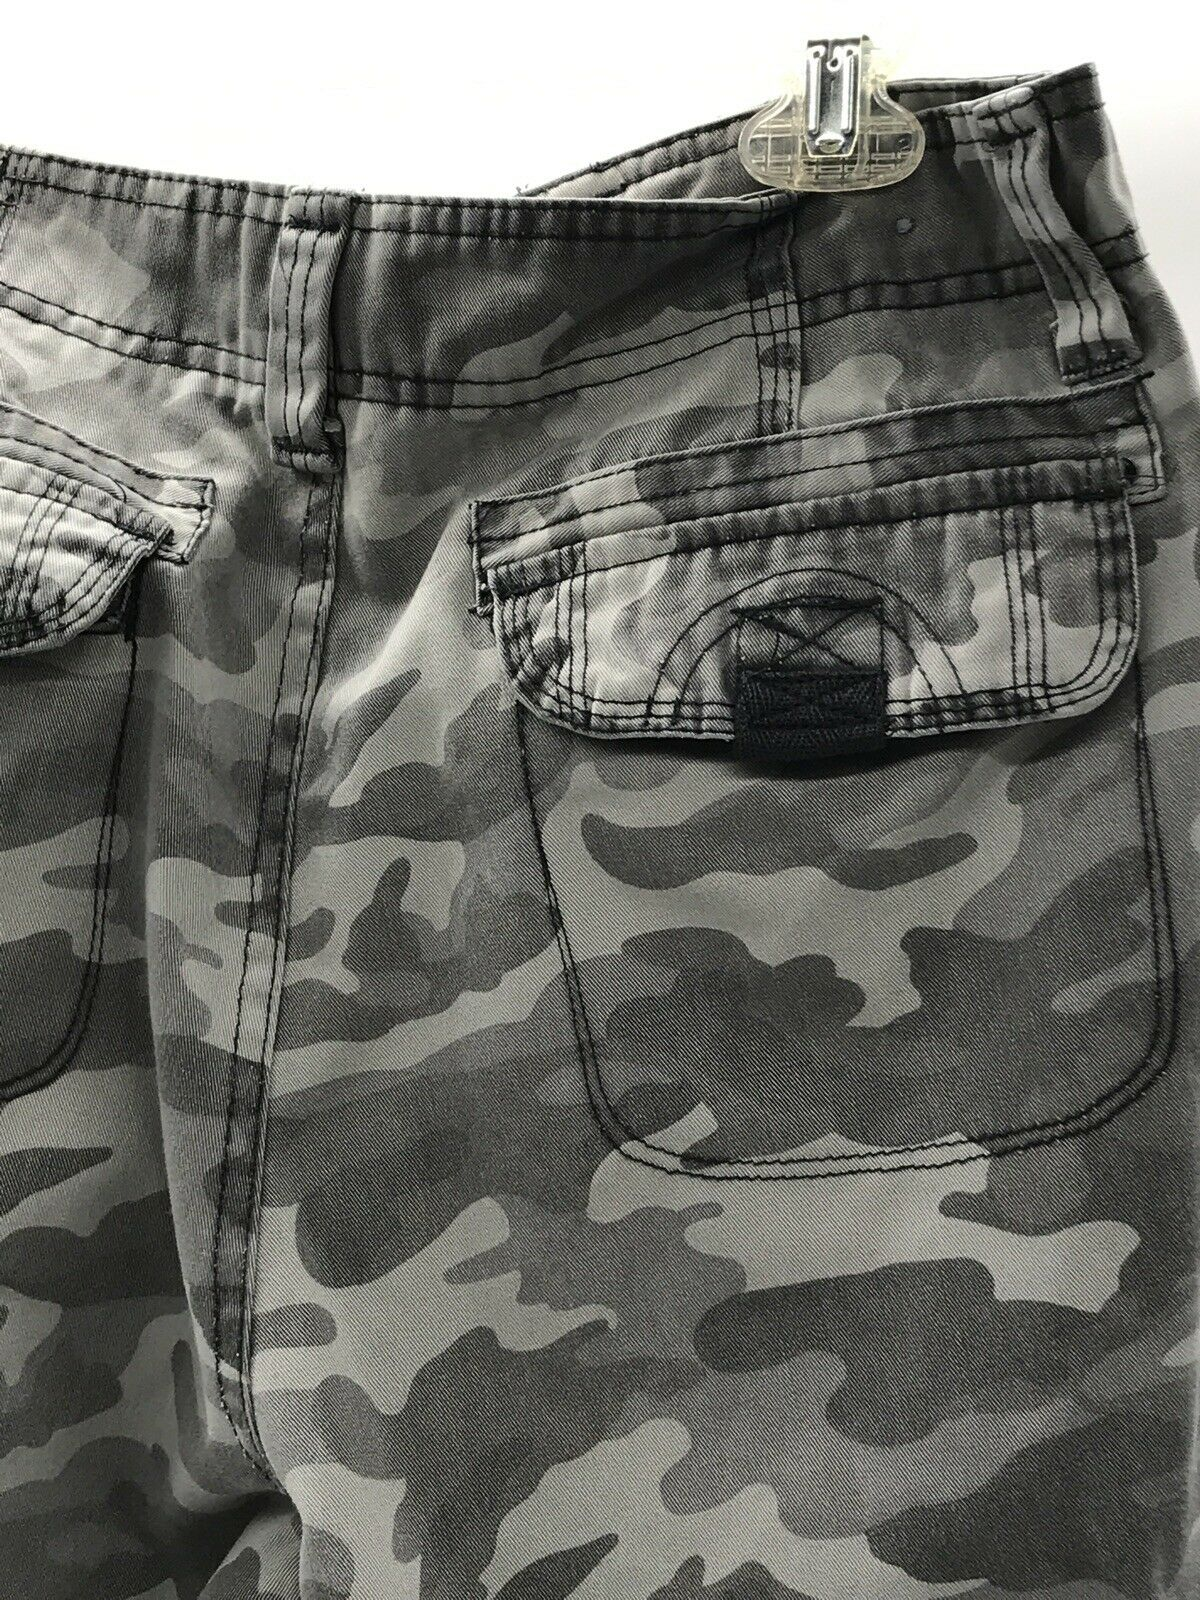 Courage Clothing Company Mens Camouflage Hiking S… - image 8